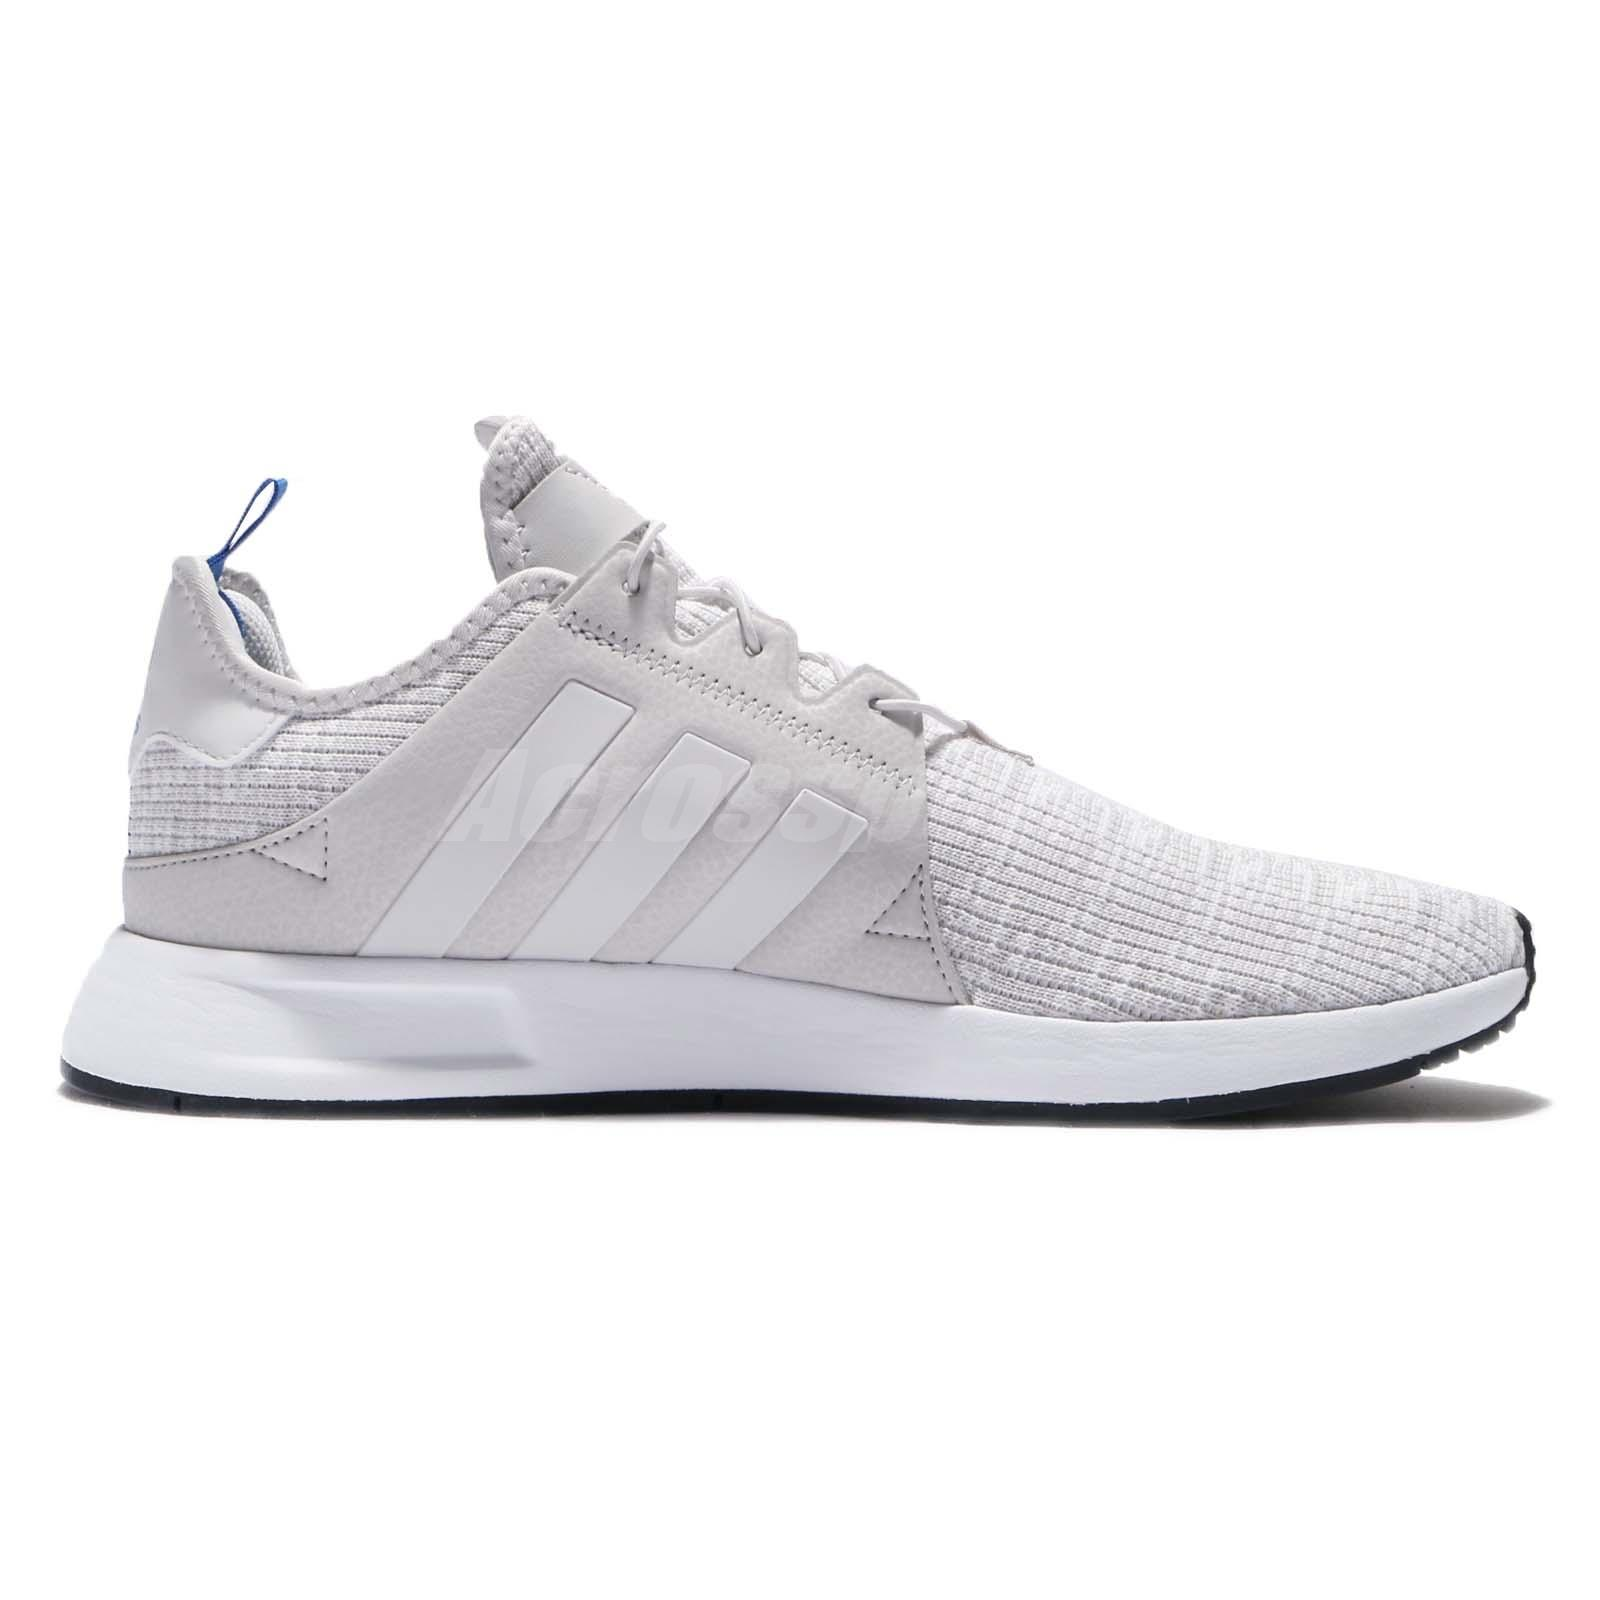 adidas adidas X_PLR Greone/Greone/Blue big discount for sale buy cheap new arrival cheap sast clearance new styles mdLQK